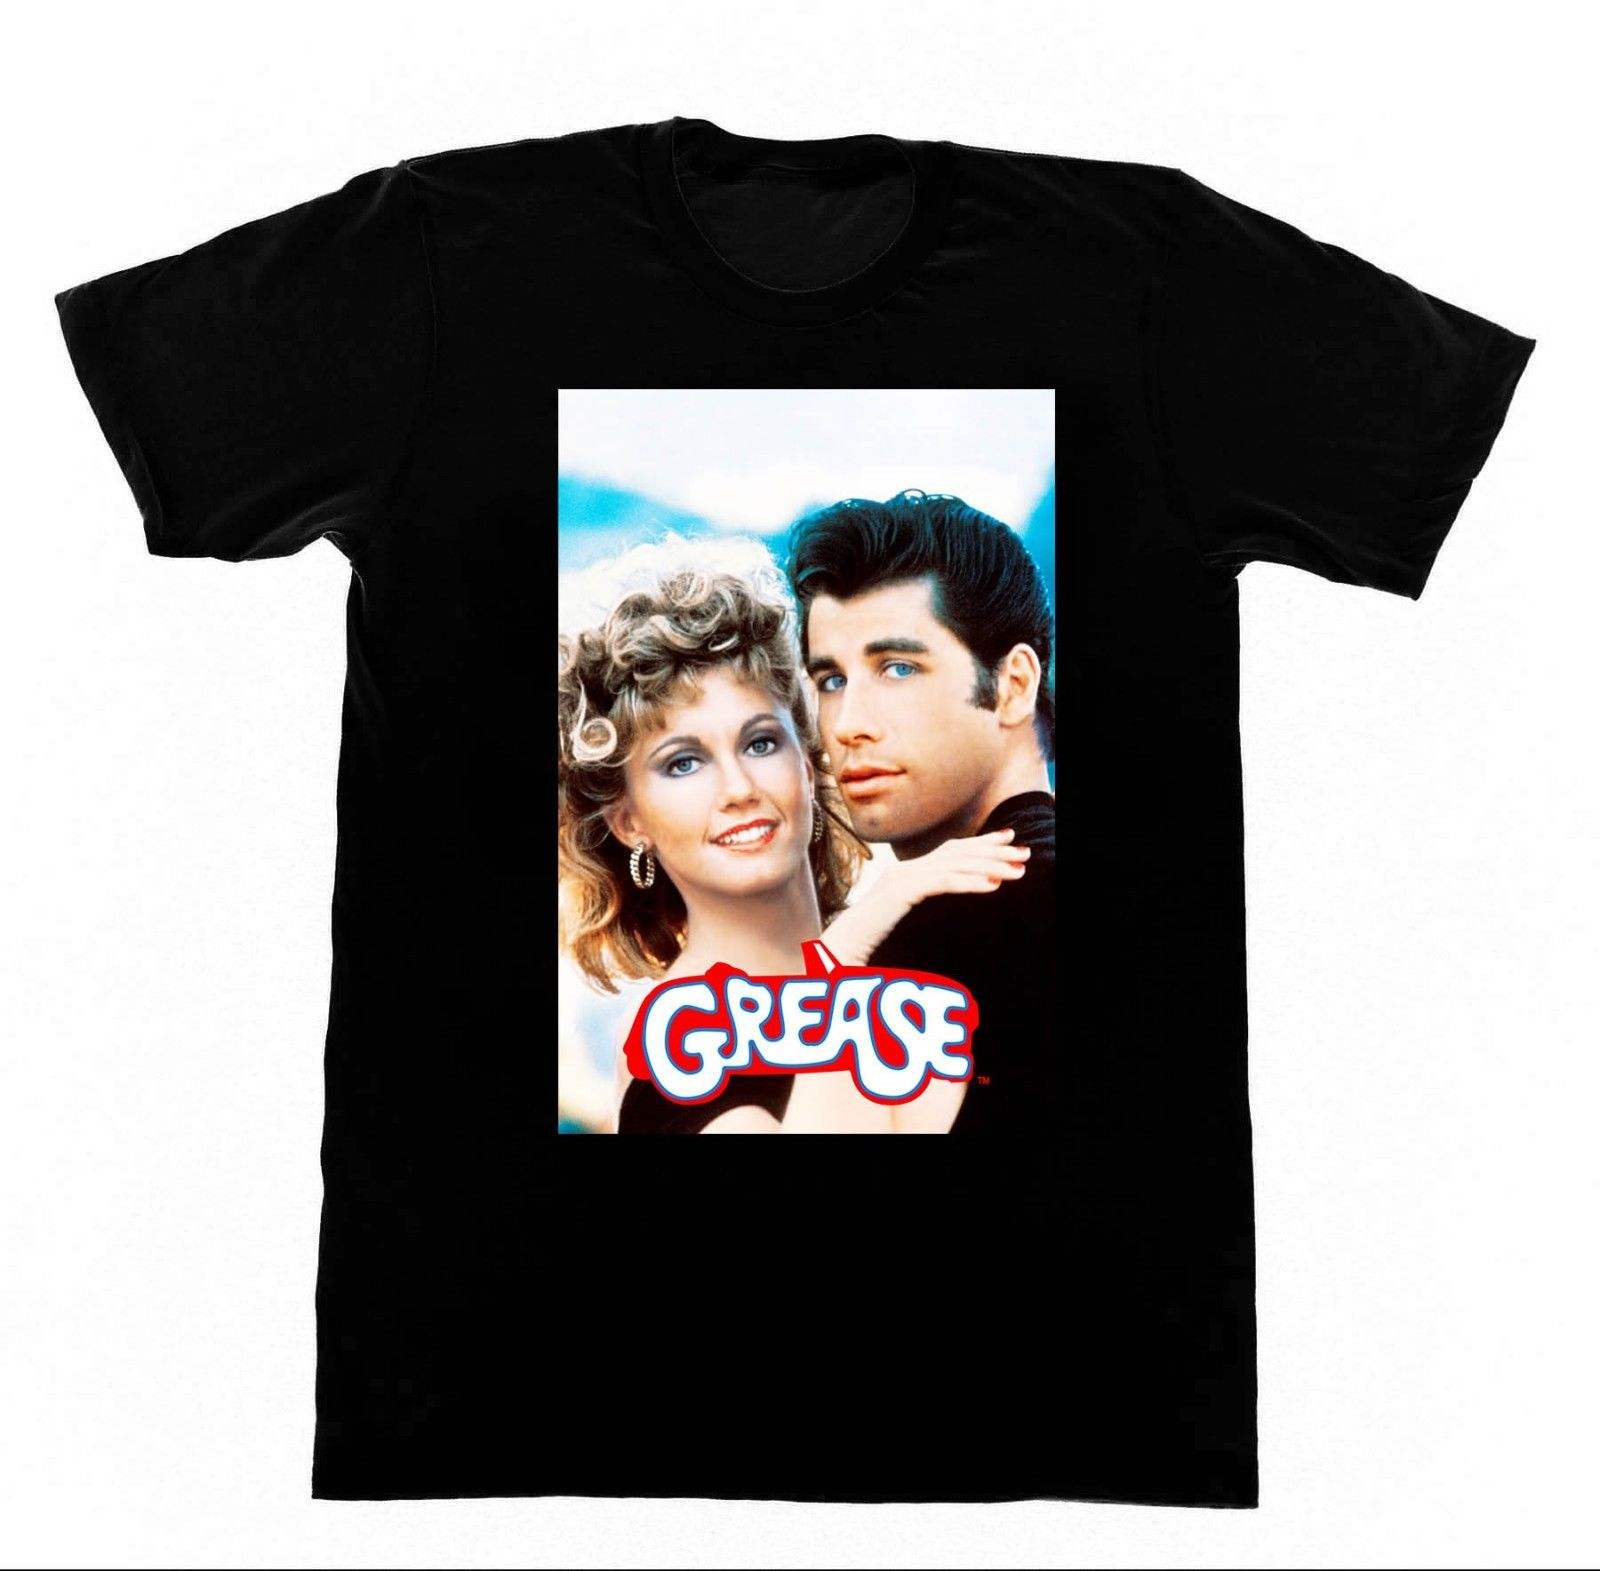 Grease Travolta Oliva Newton John T Shirt Bee Gees Andy Gib Avalon New 2018 Hot Summer Casual T Shirt Printing in T Shirts from Men 39 s Clothing